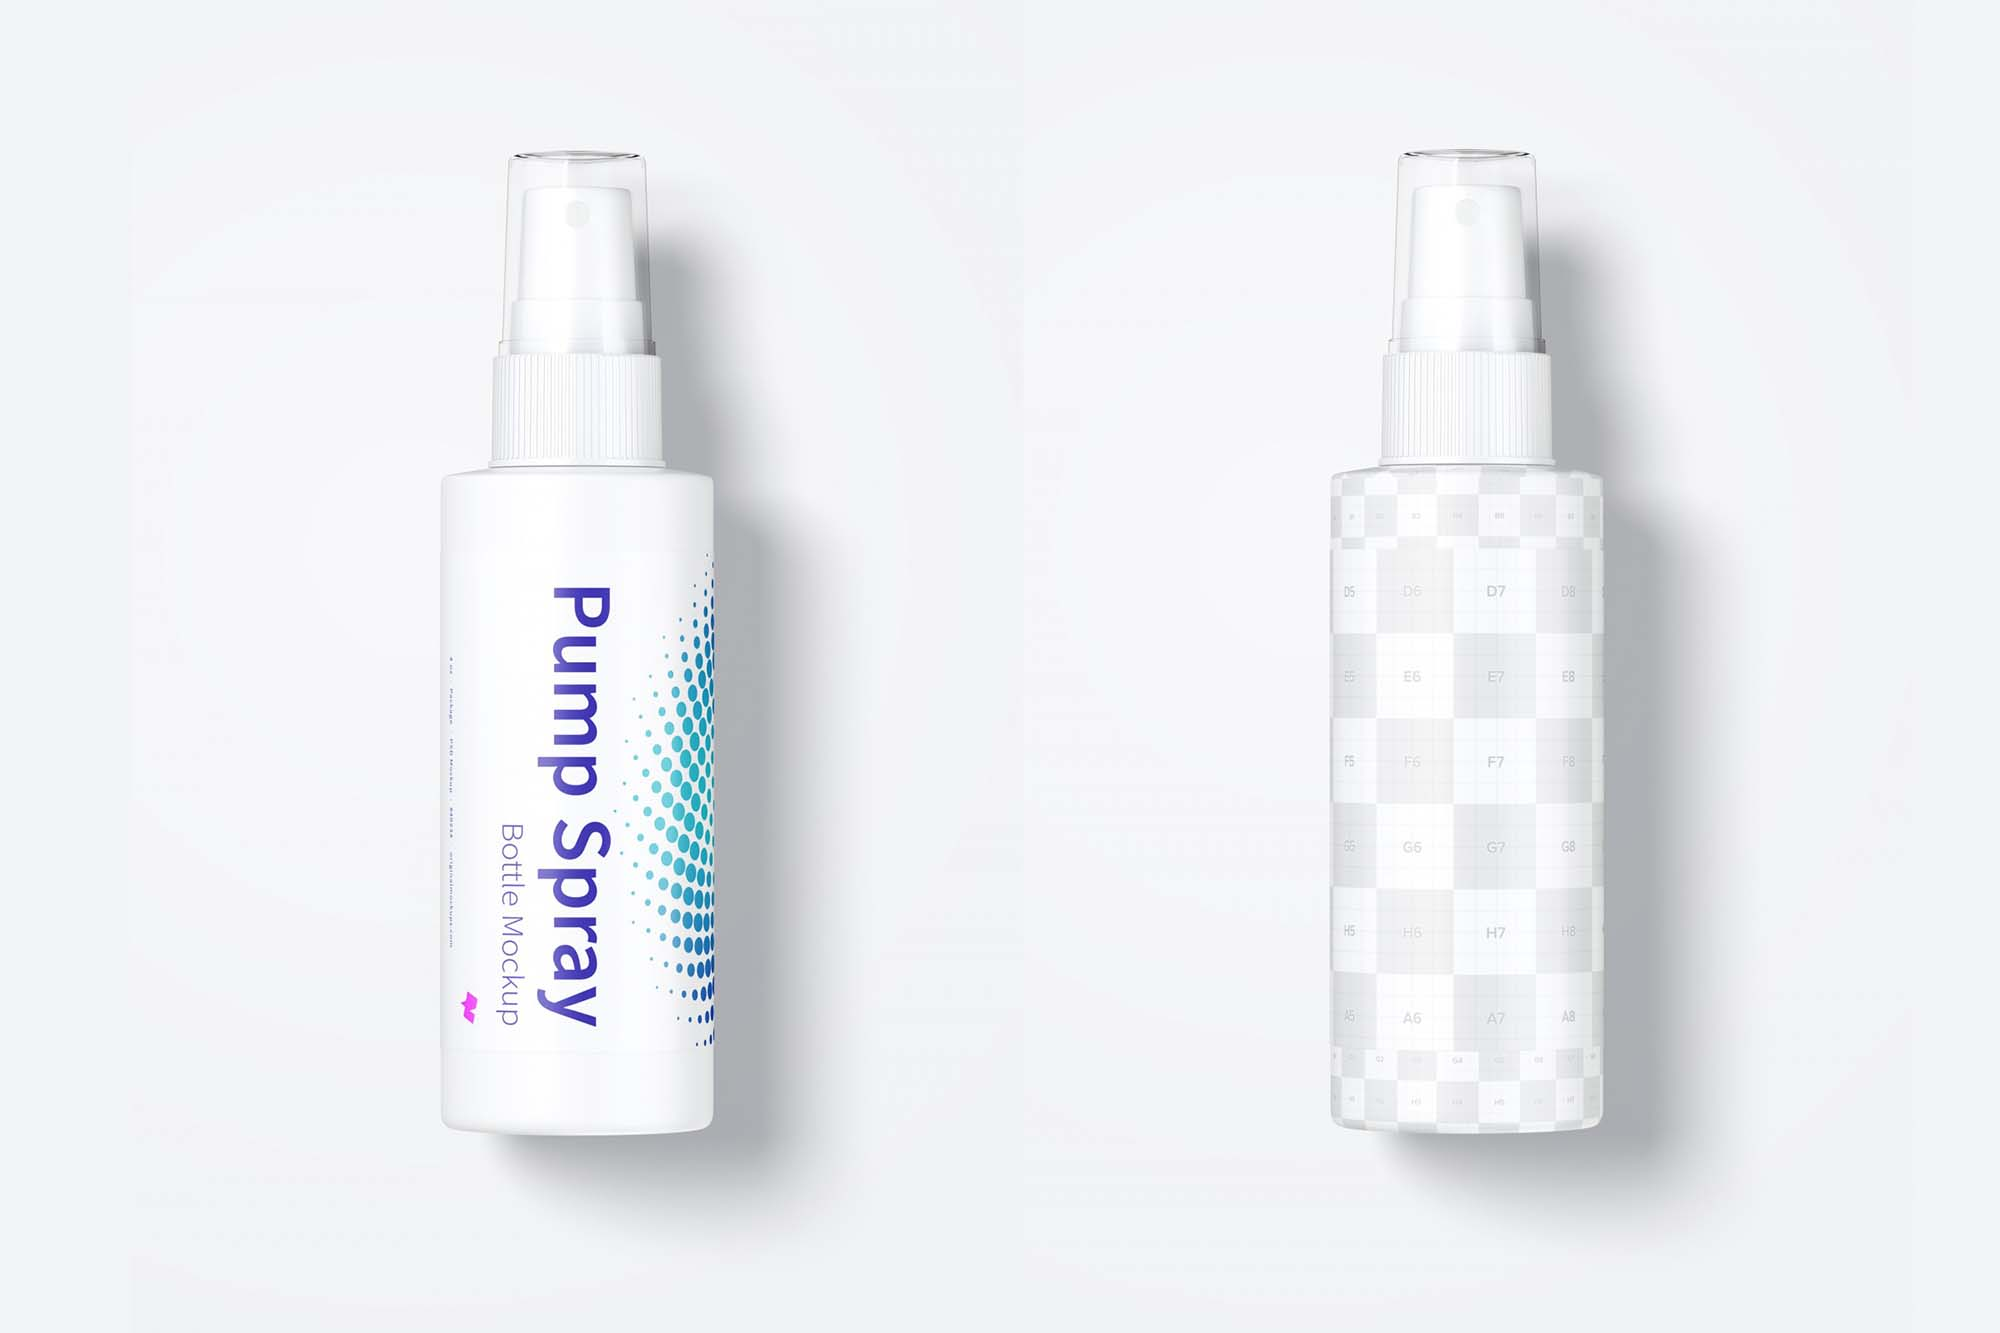 Pump Spray Bottle Mockup 2